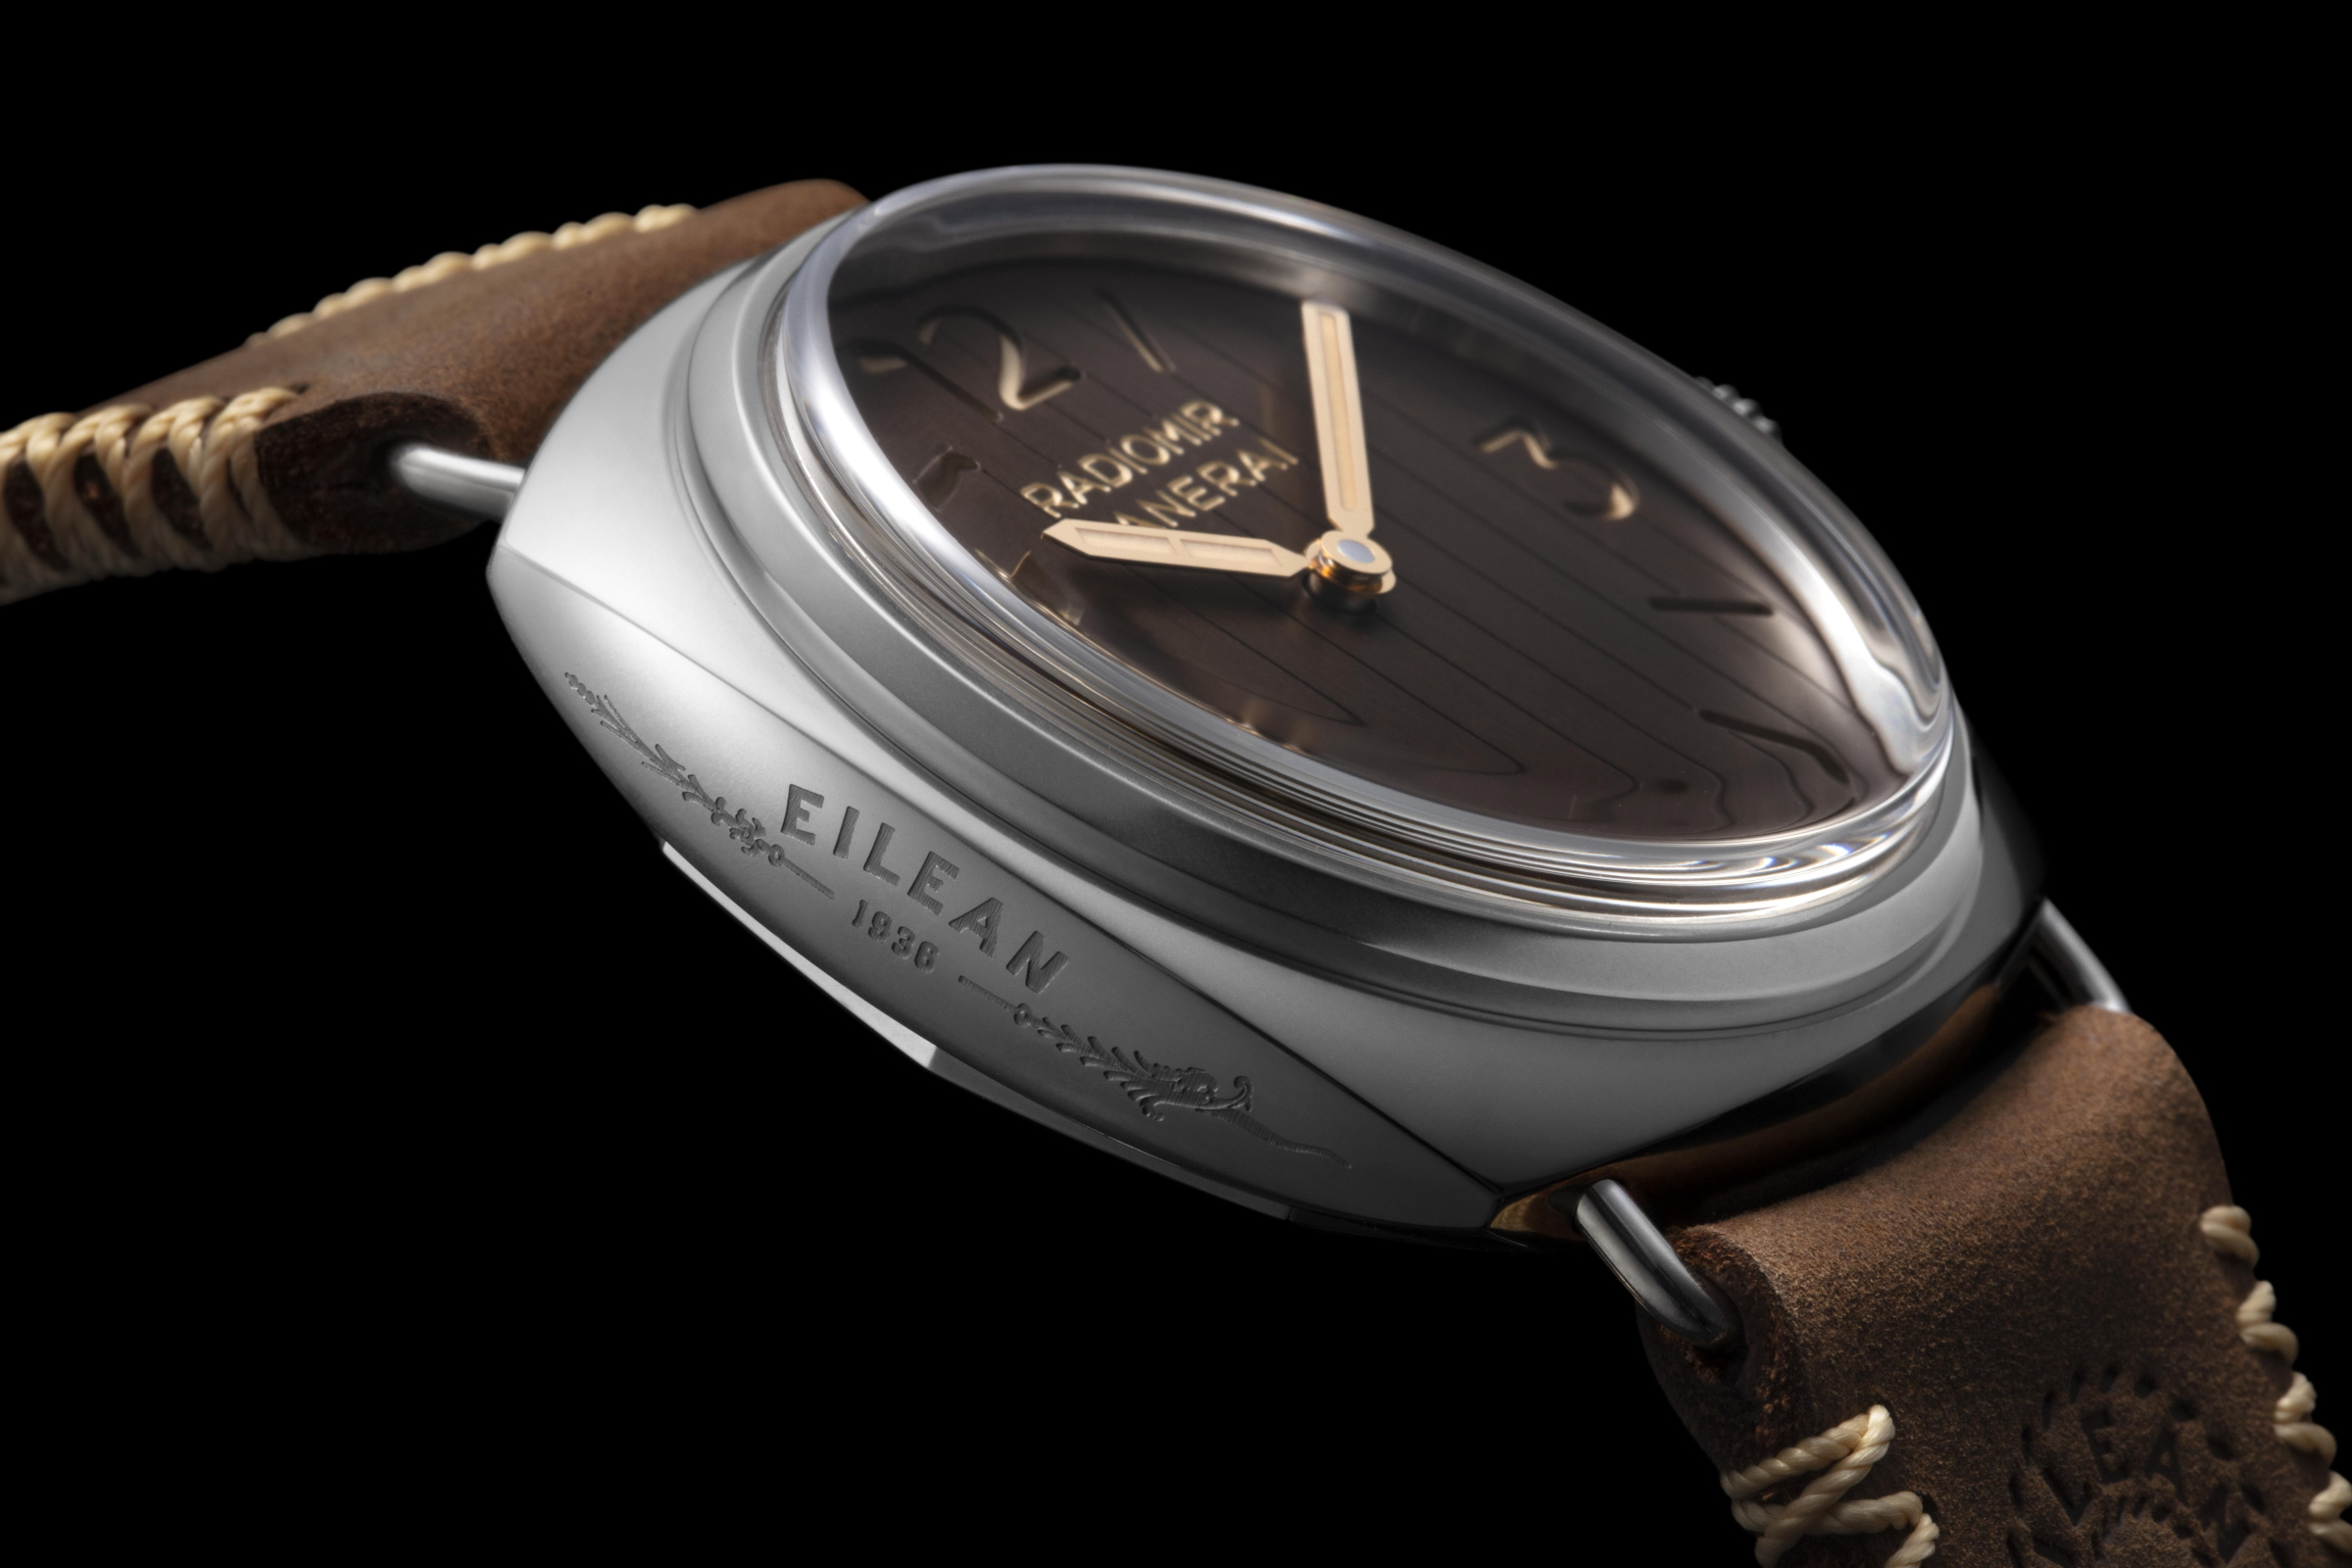 The Radiomir Eilean Charts A New Course In Nautical Inspired Timepieces